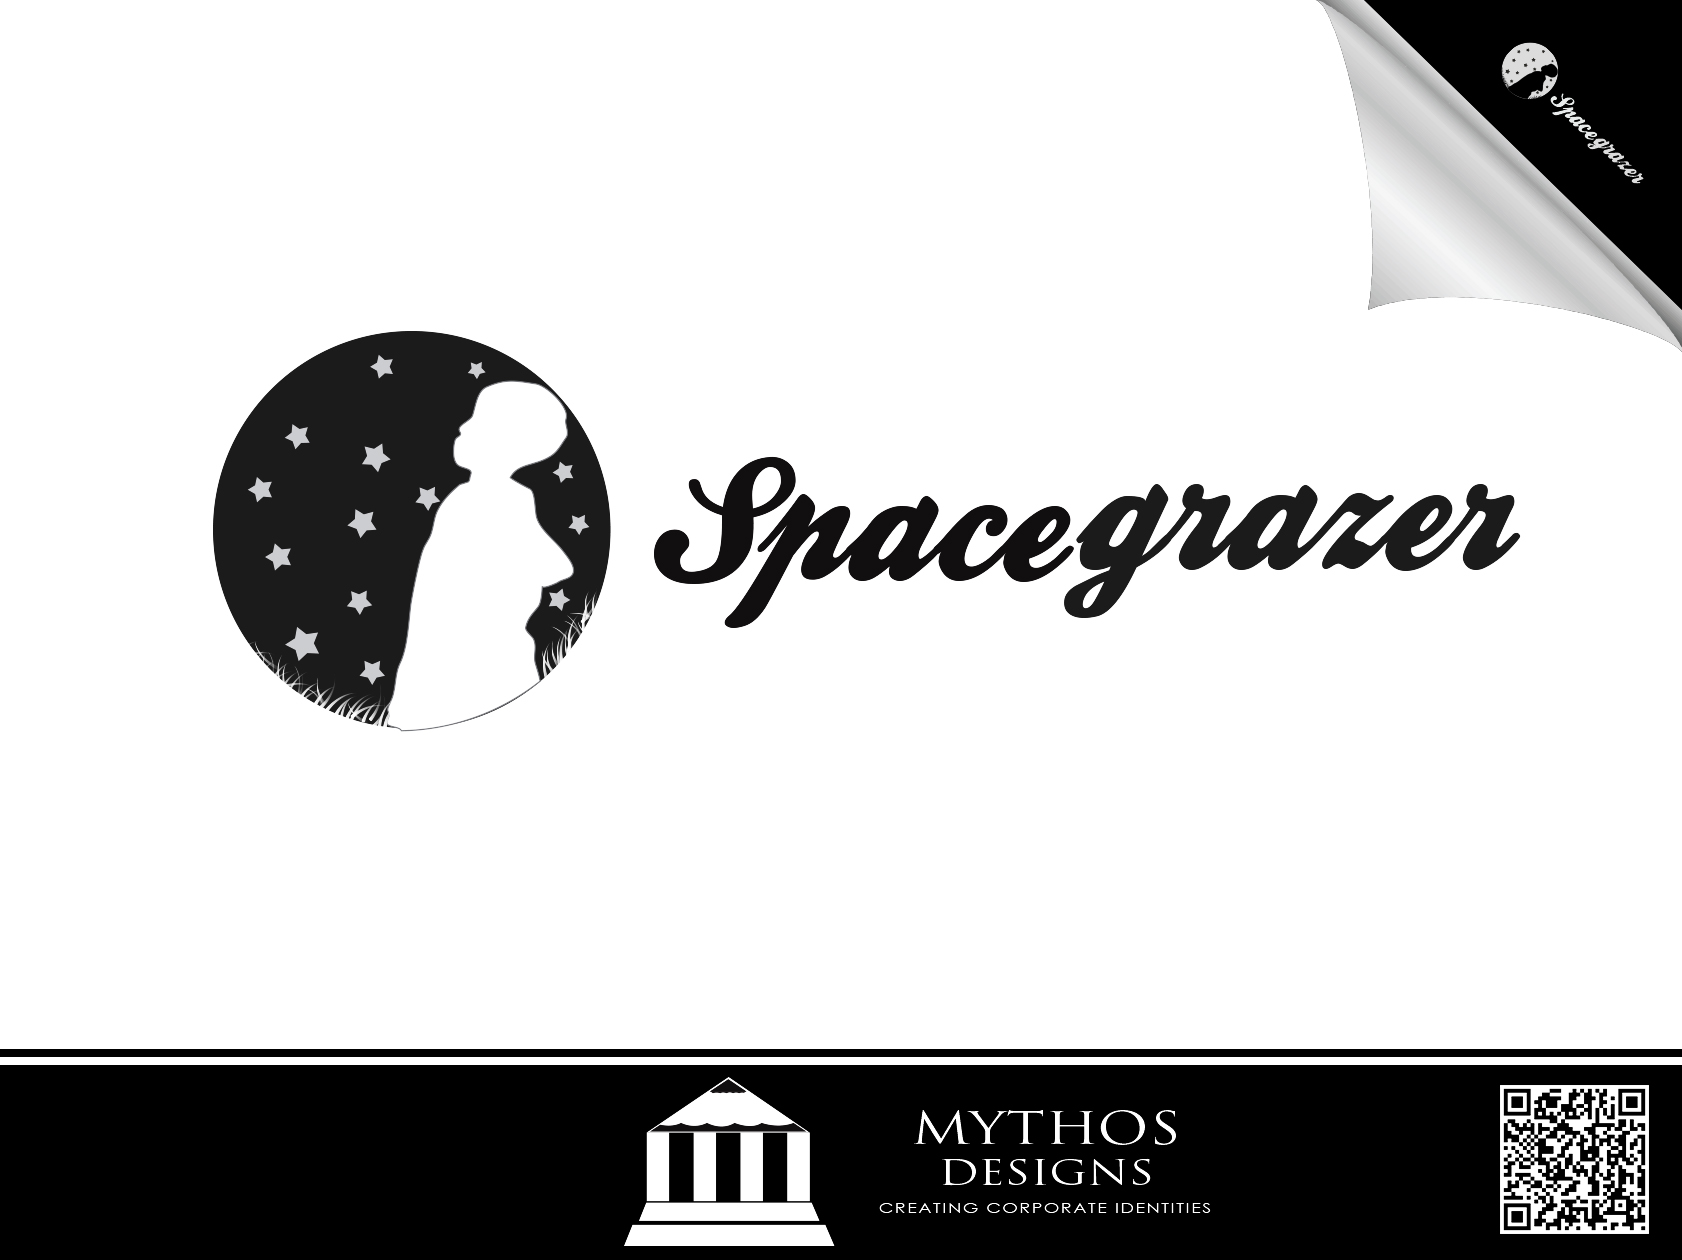 Logo Design by Mythos Designs - Entry No. 62 in the Logo Design Contest Fun Logo Design for Spacegrazer.